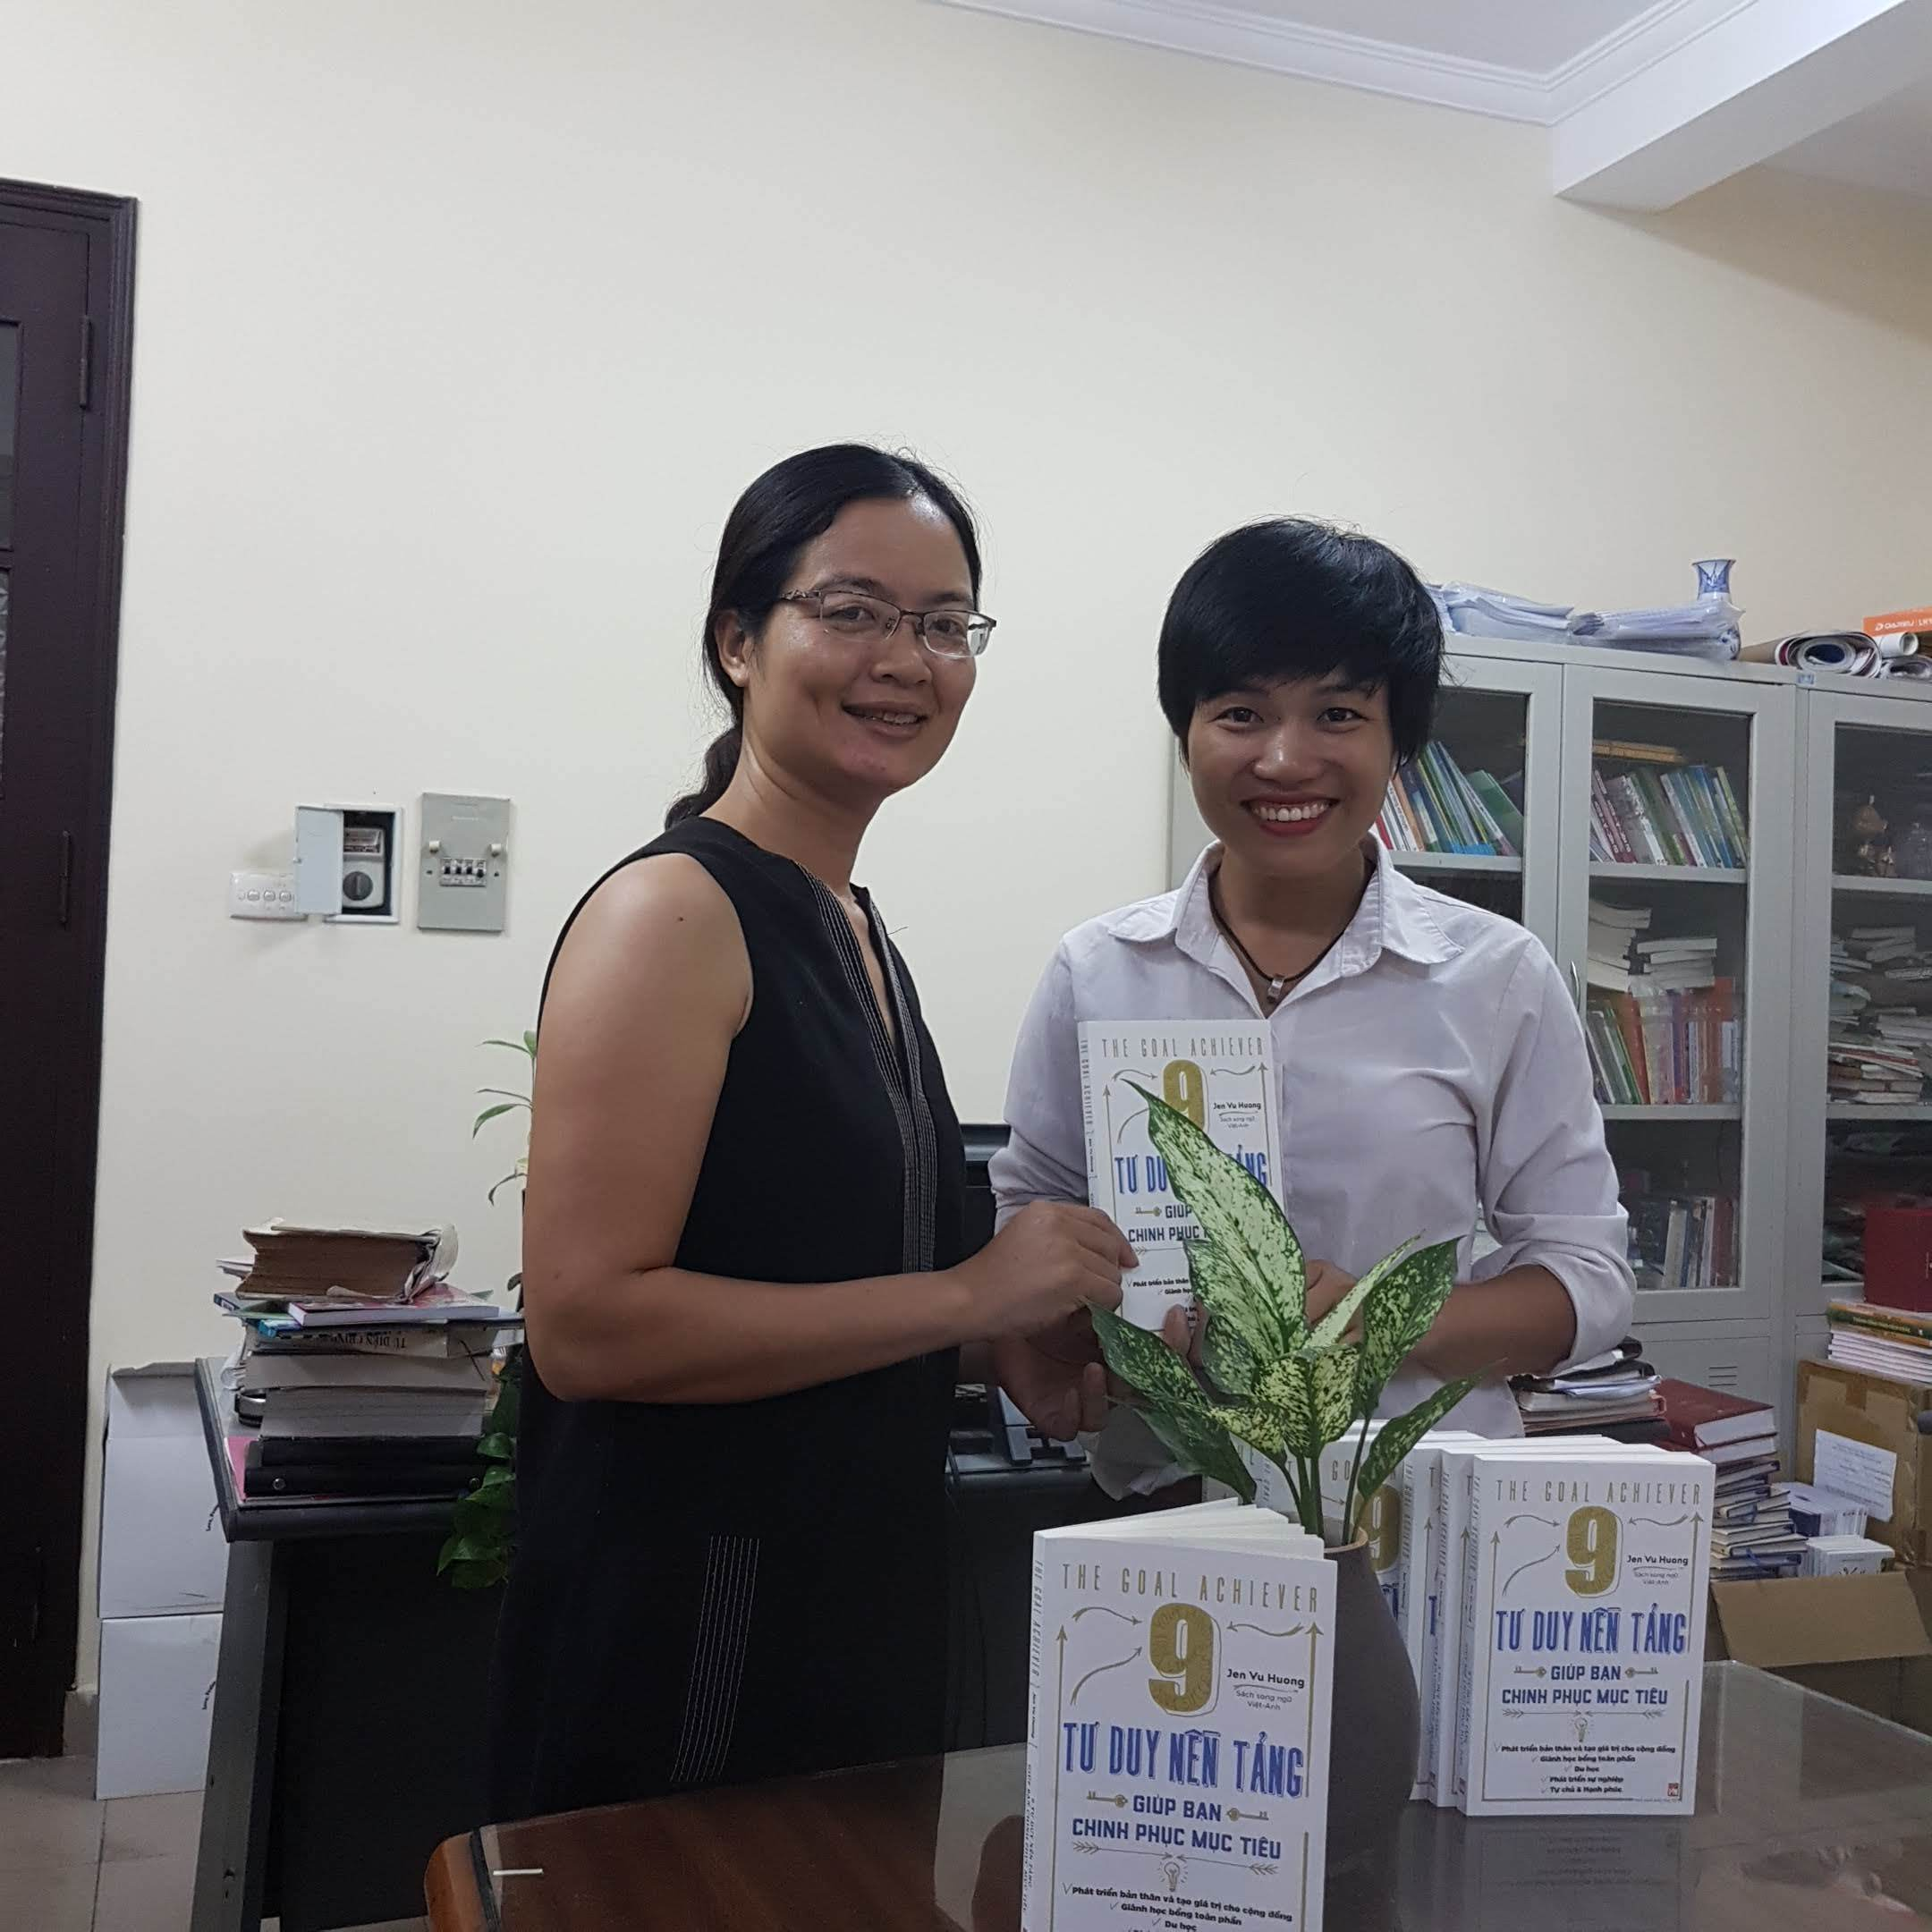 At Women's publishing House - receiving the printed books!